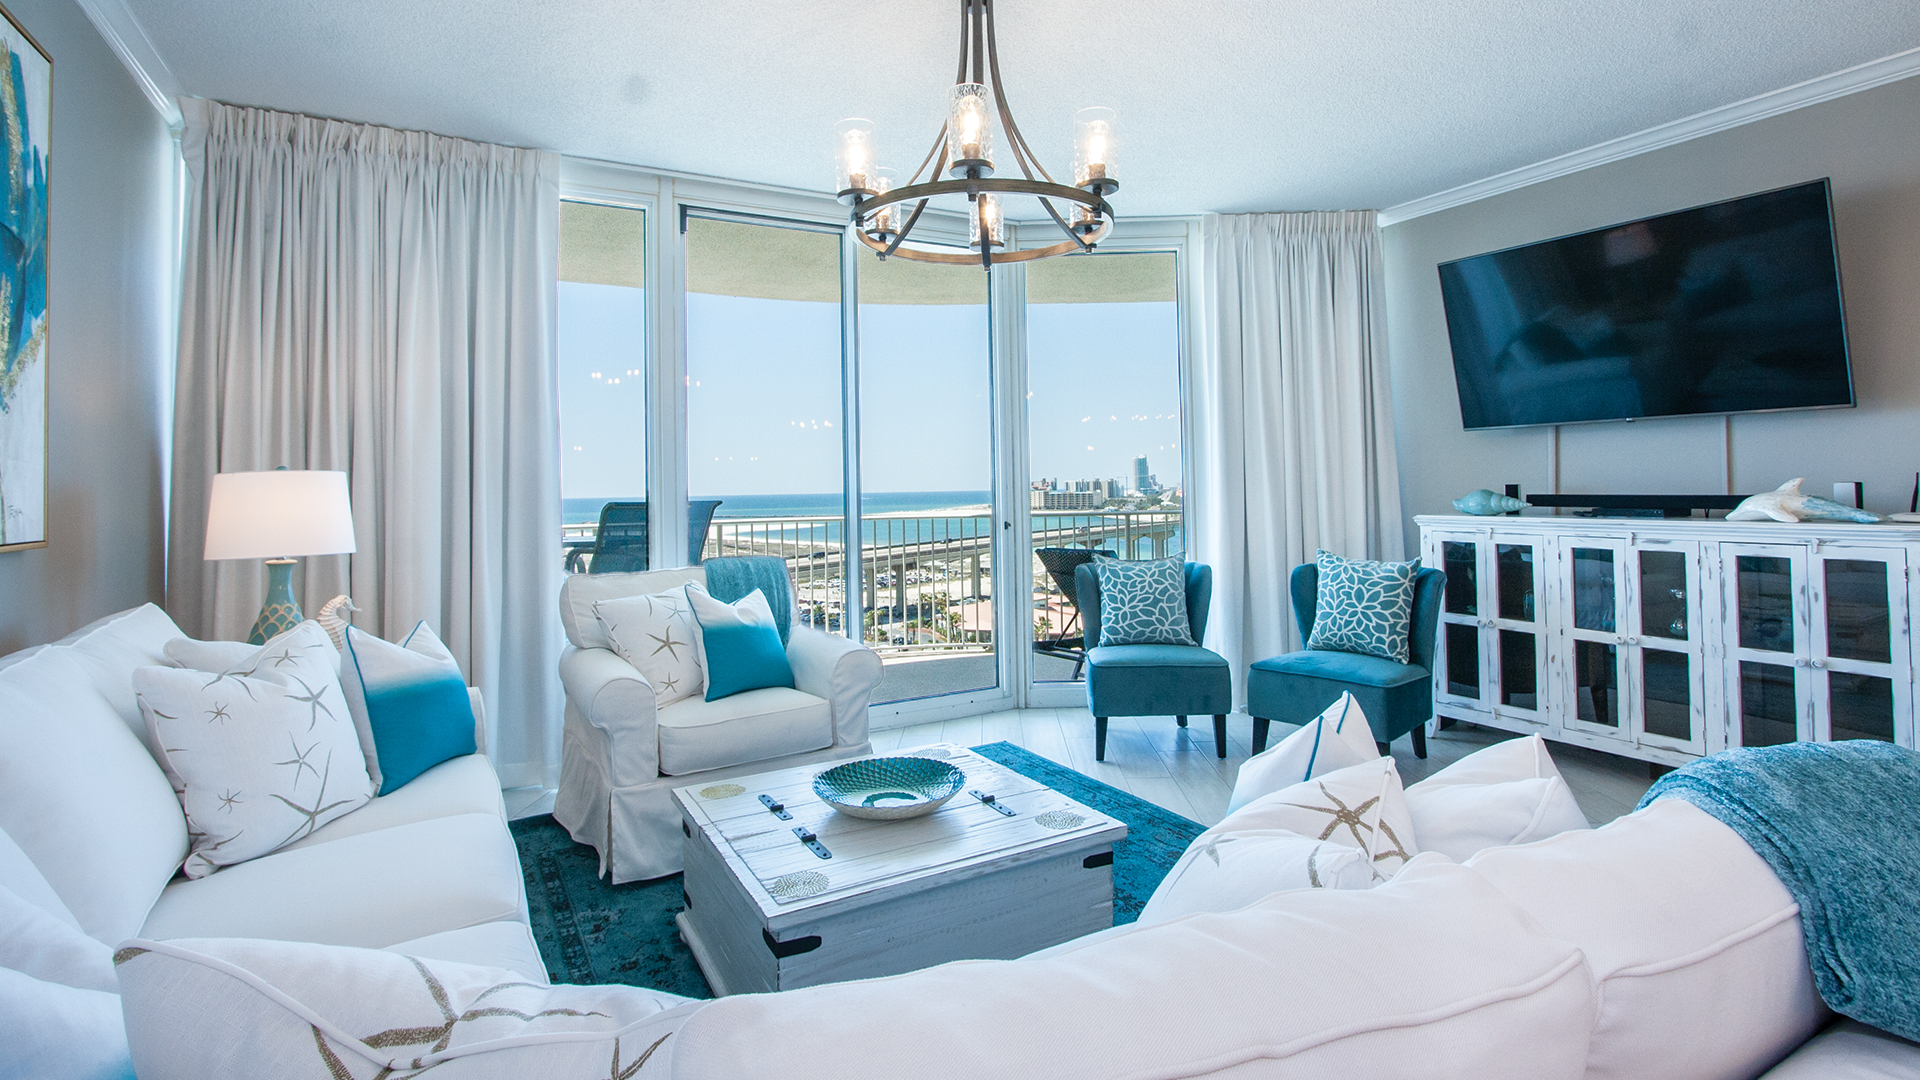 Relax in this Modern Coastal Condo